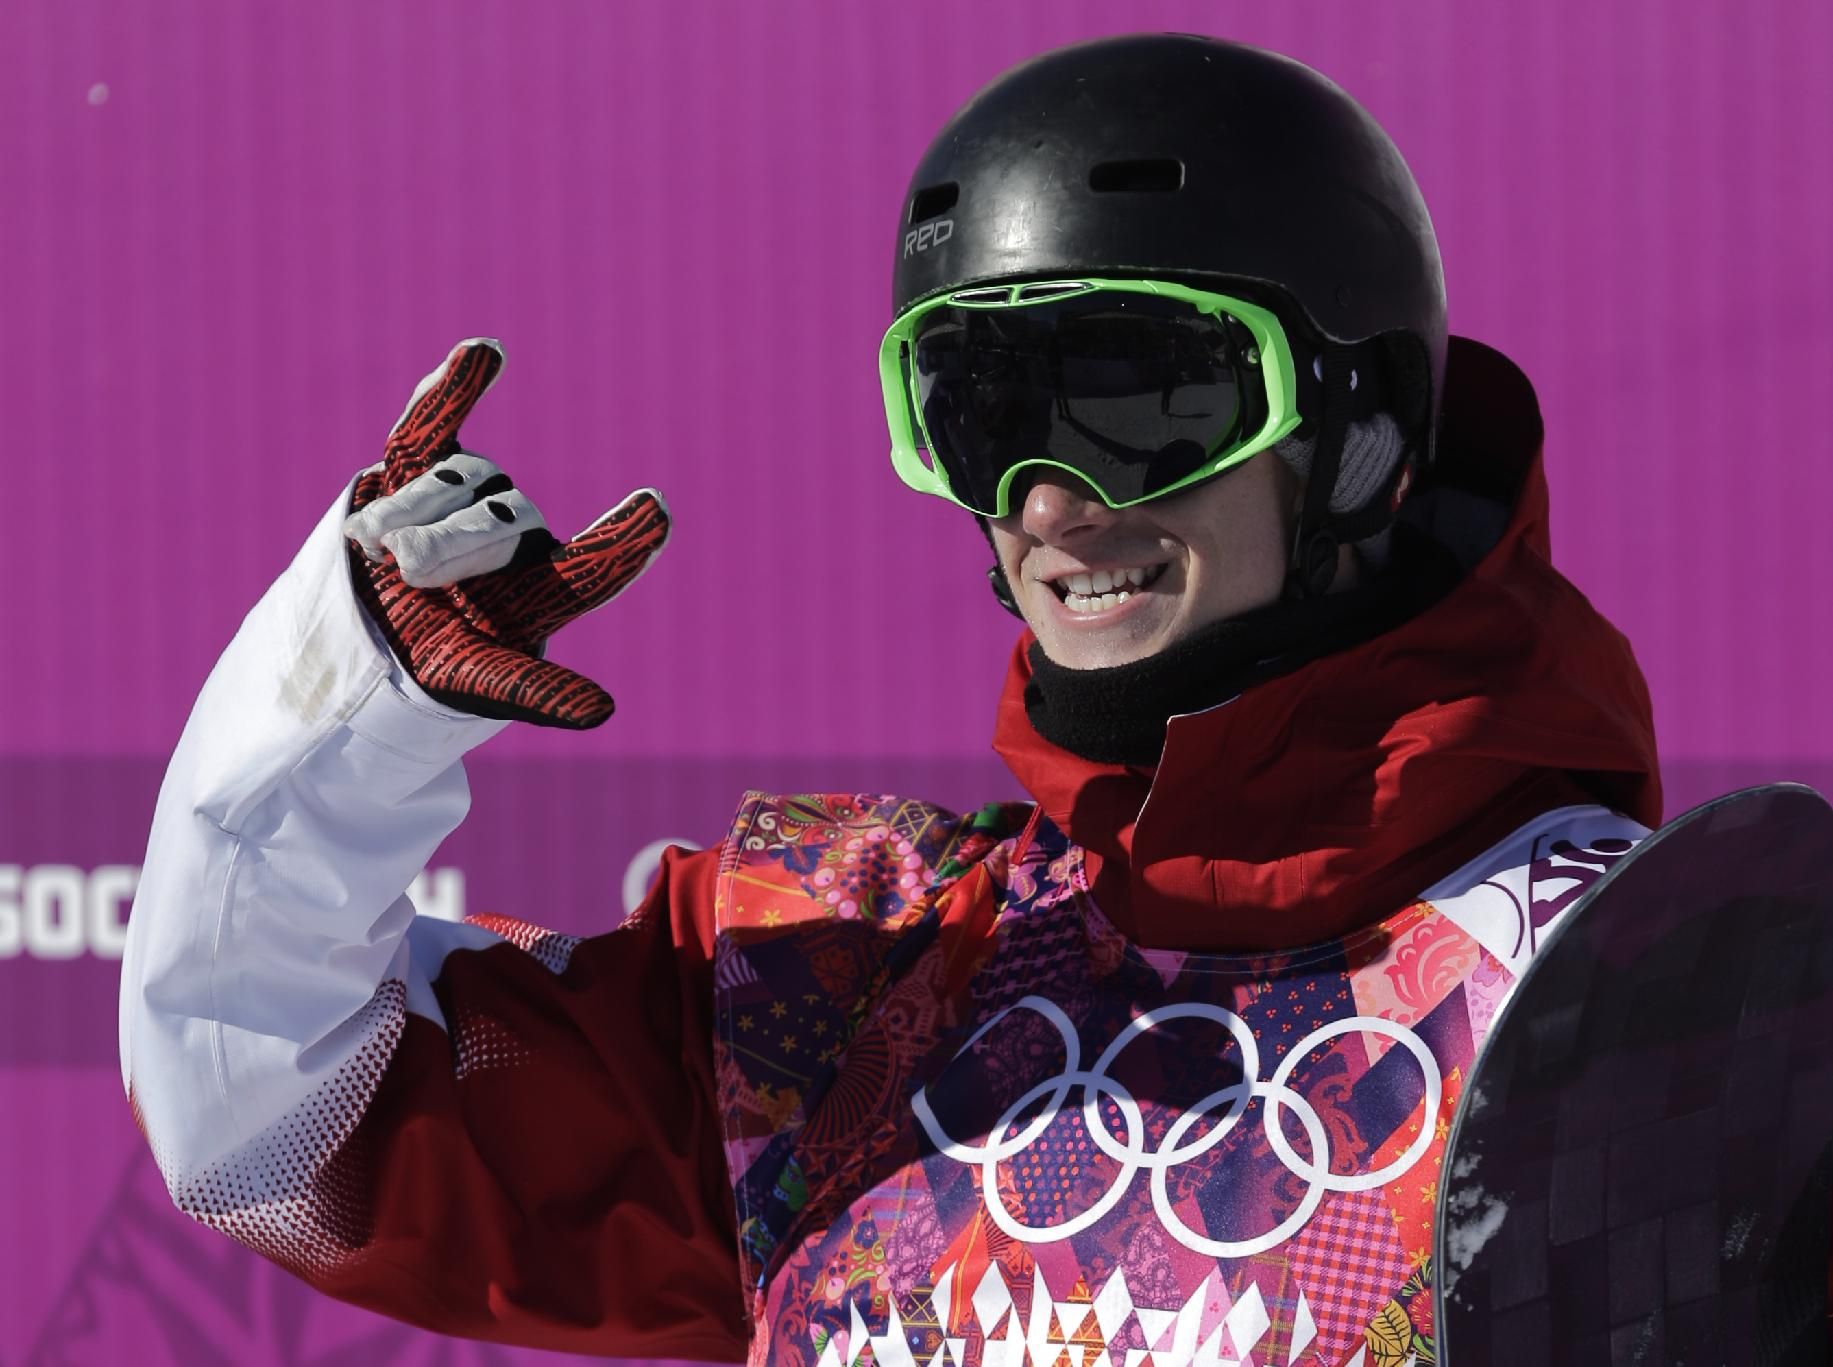 Canada's Maxence Parrot reacts after a run during the men's snowboard slopestyle qualifying at the Rosa Khutor Extreme Park ahead of the 2014 Winter Olympics, Thursday, Feb. 6, 2014, in Krasnaya Polyana, Russia